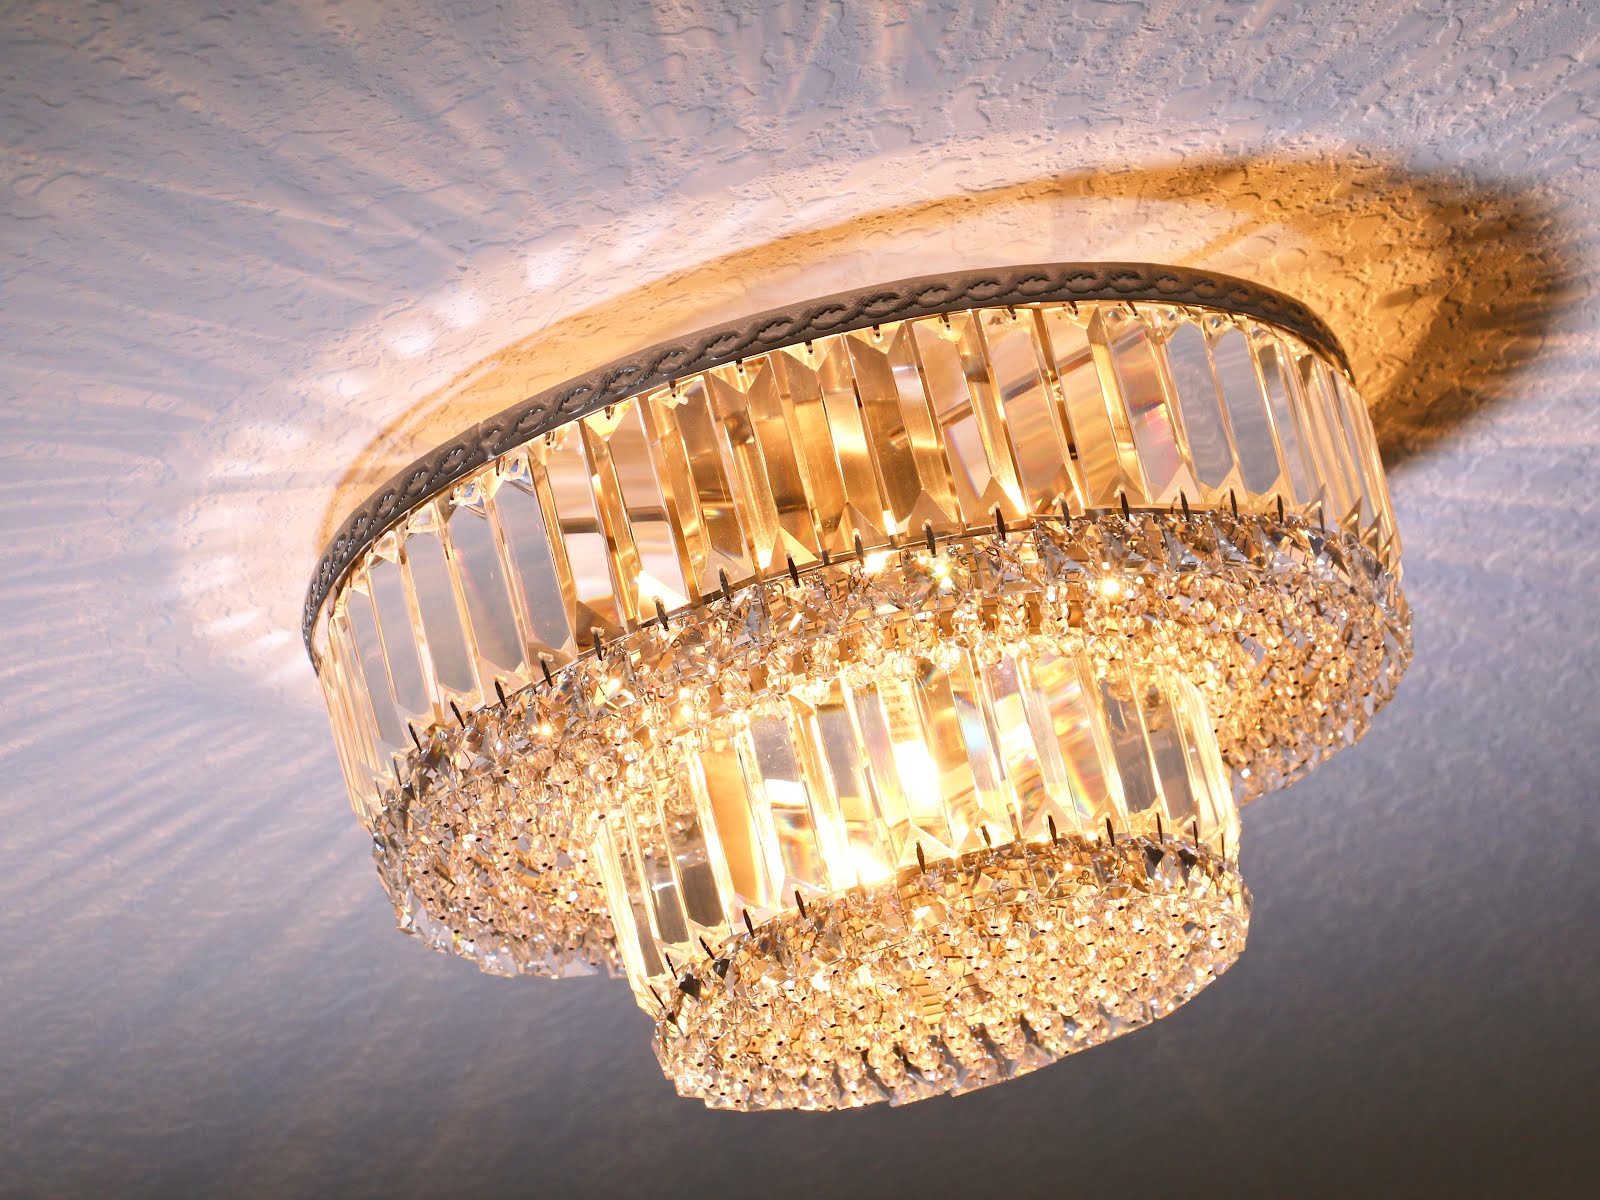 Lamps-Plus-Magnificence-Satin-Nickel-16-Wide-Crystal-Ceiling-Light-Vivi-Brizuela